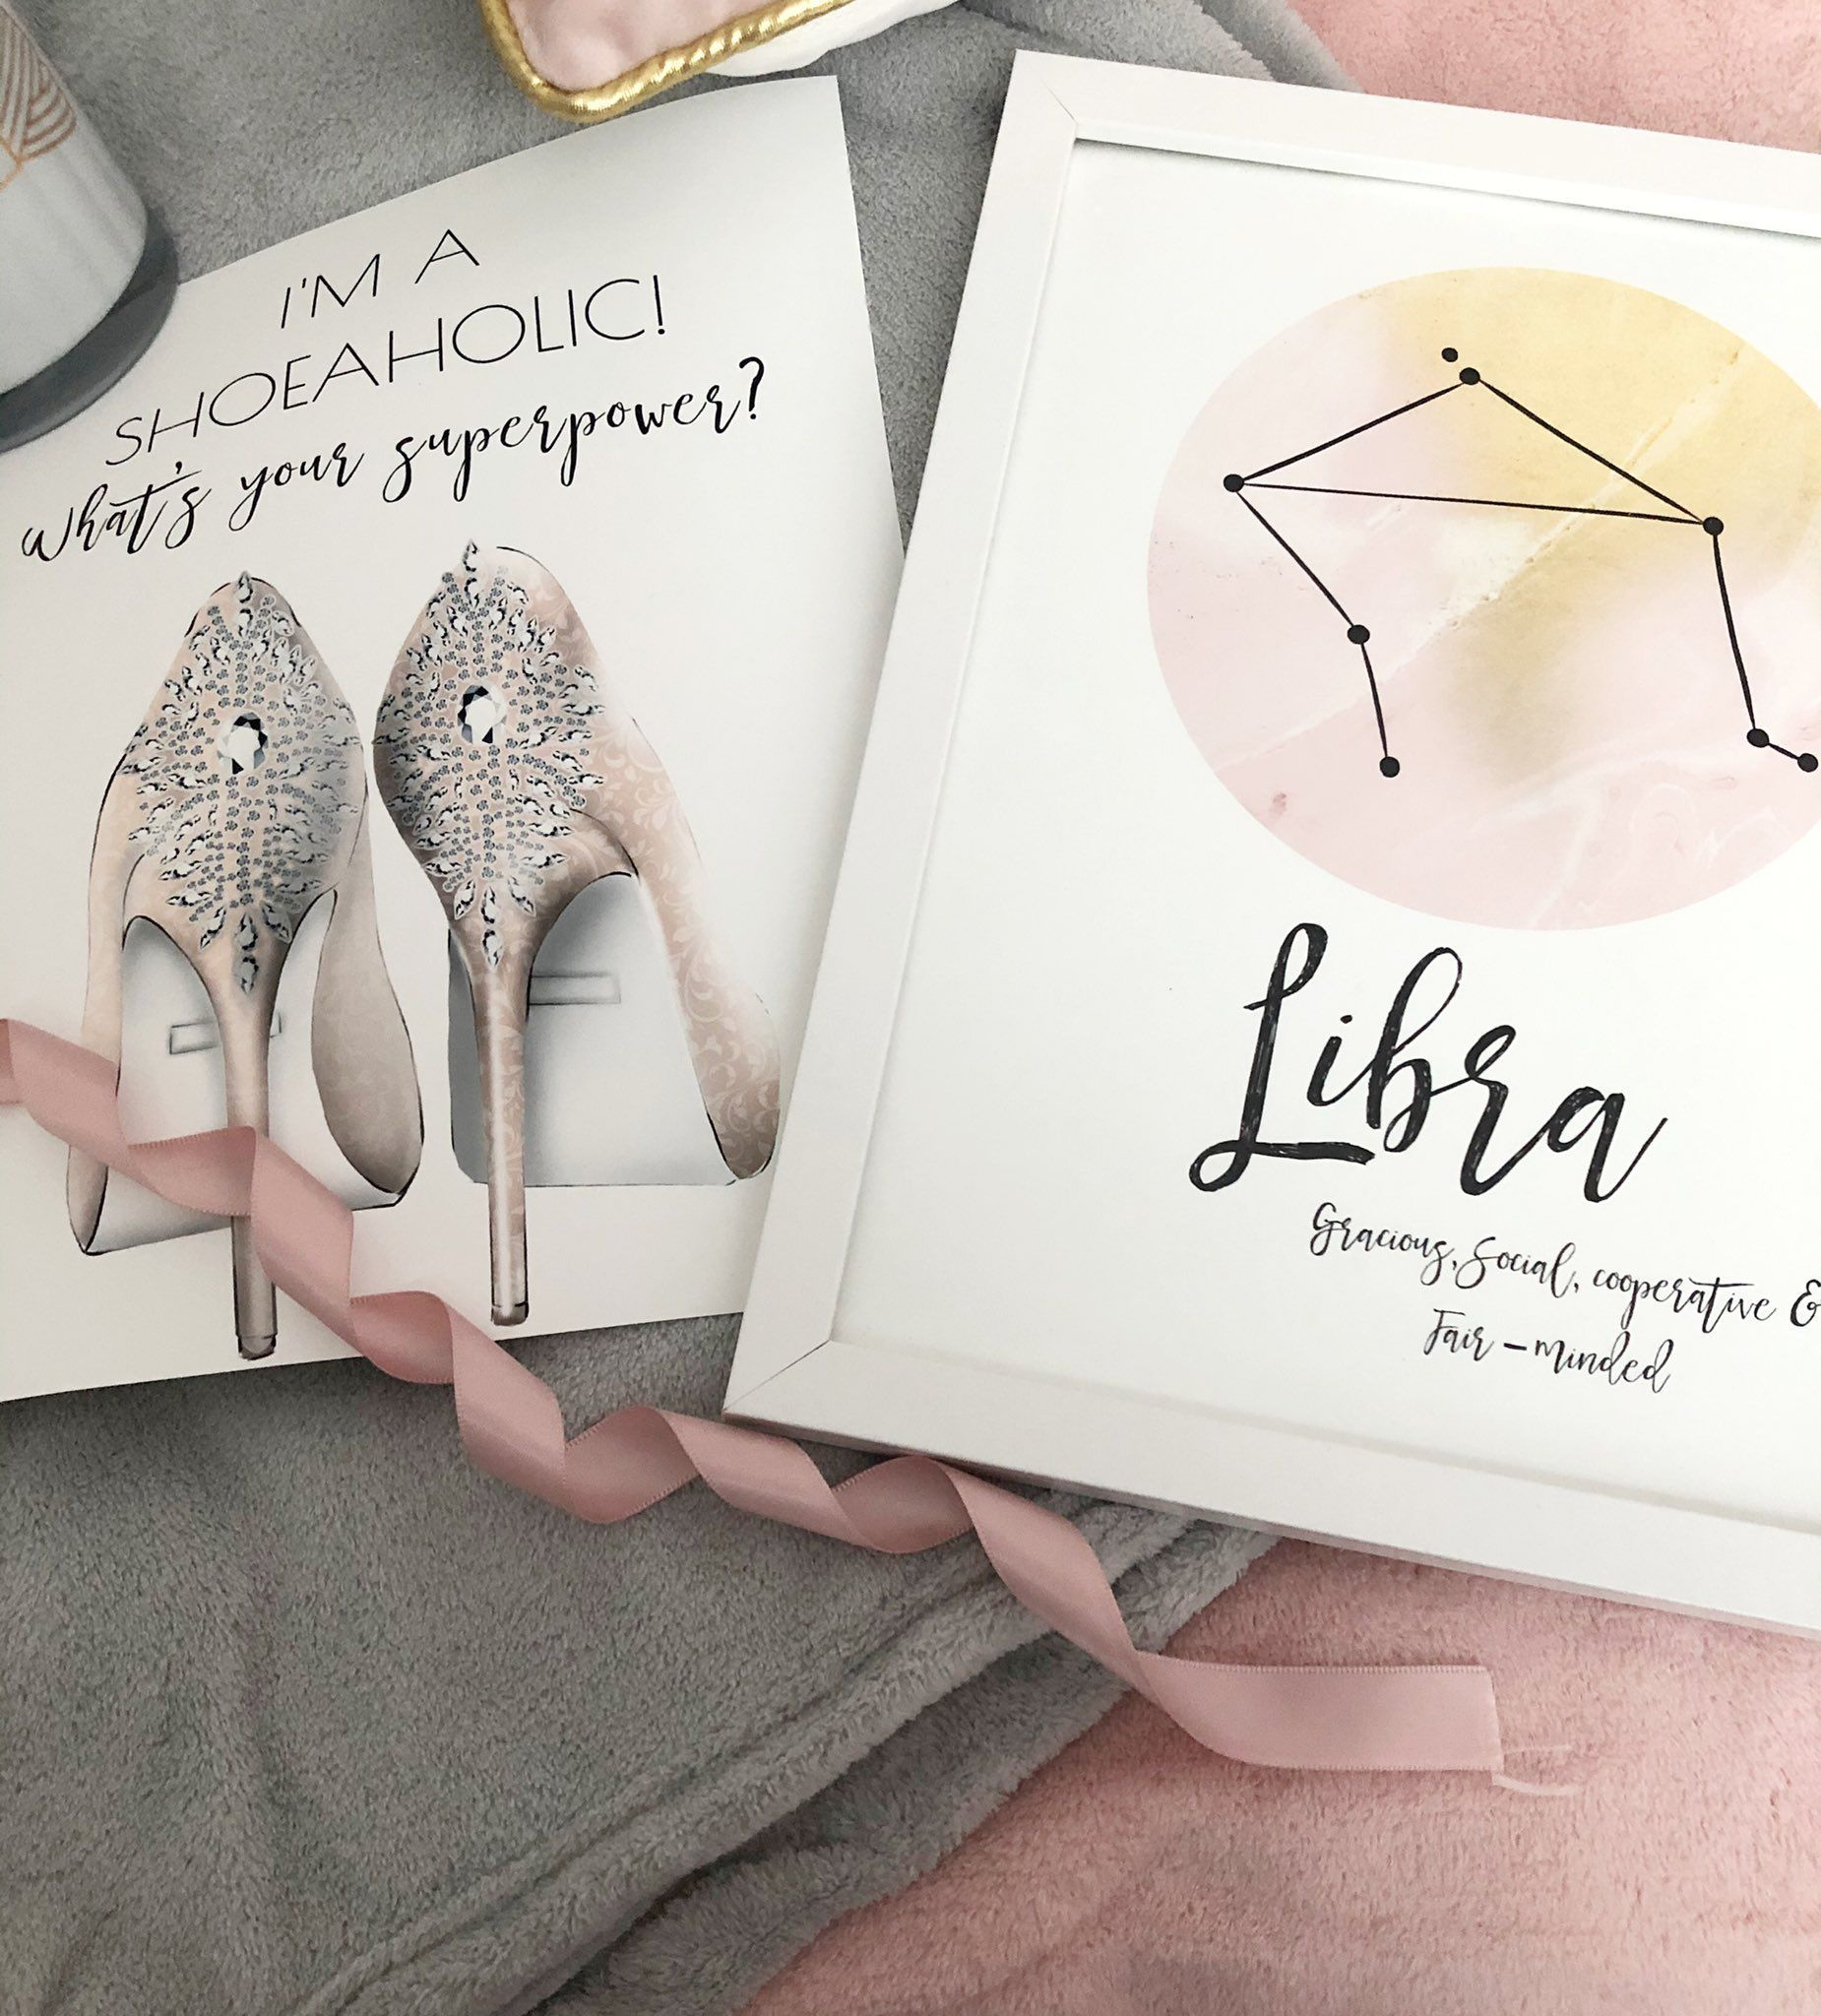 Etsy Print flatlay Etsy Prints Flatlay im a shoeaholic whats your superpower